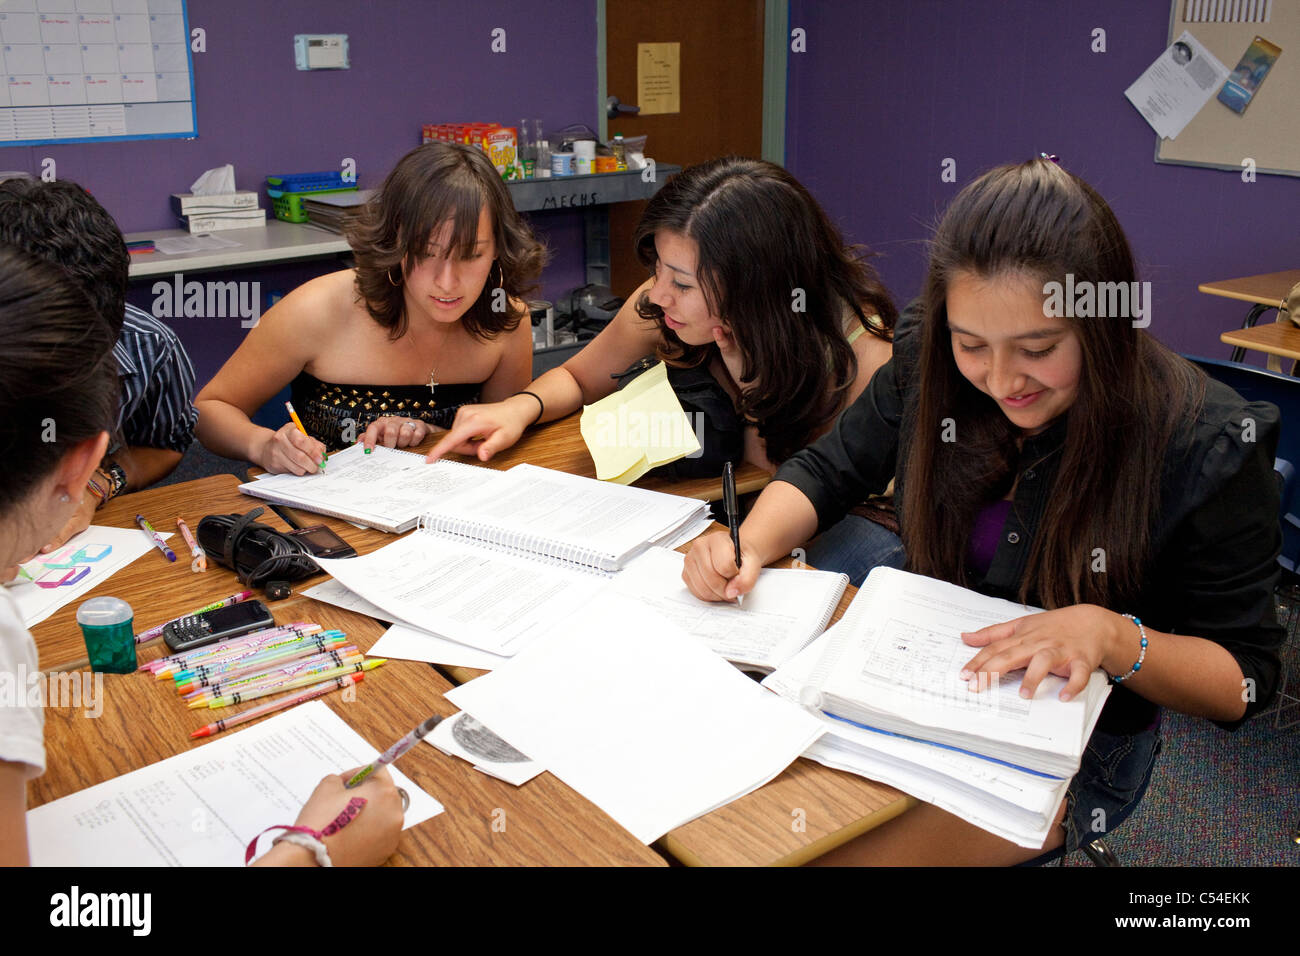 Group of students work together on project in El Paso, Texas high school classroom - Stock Image